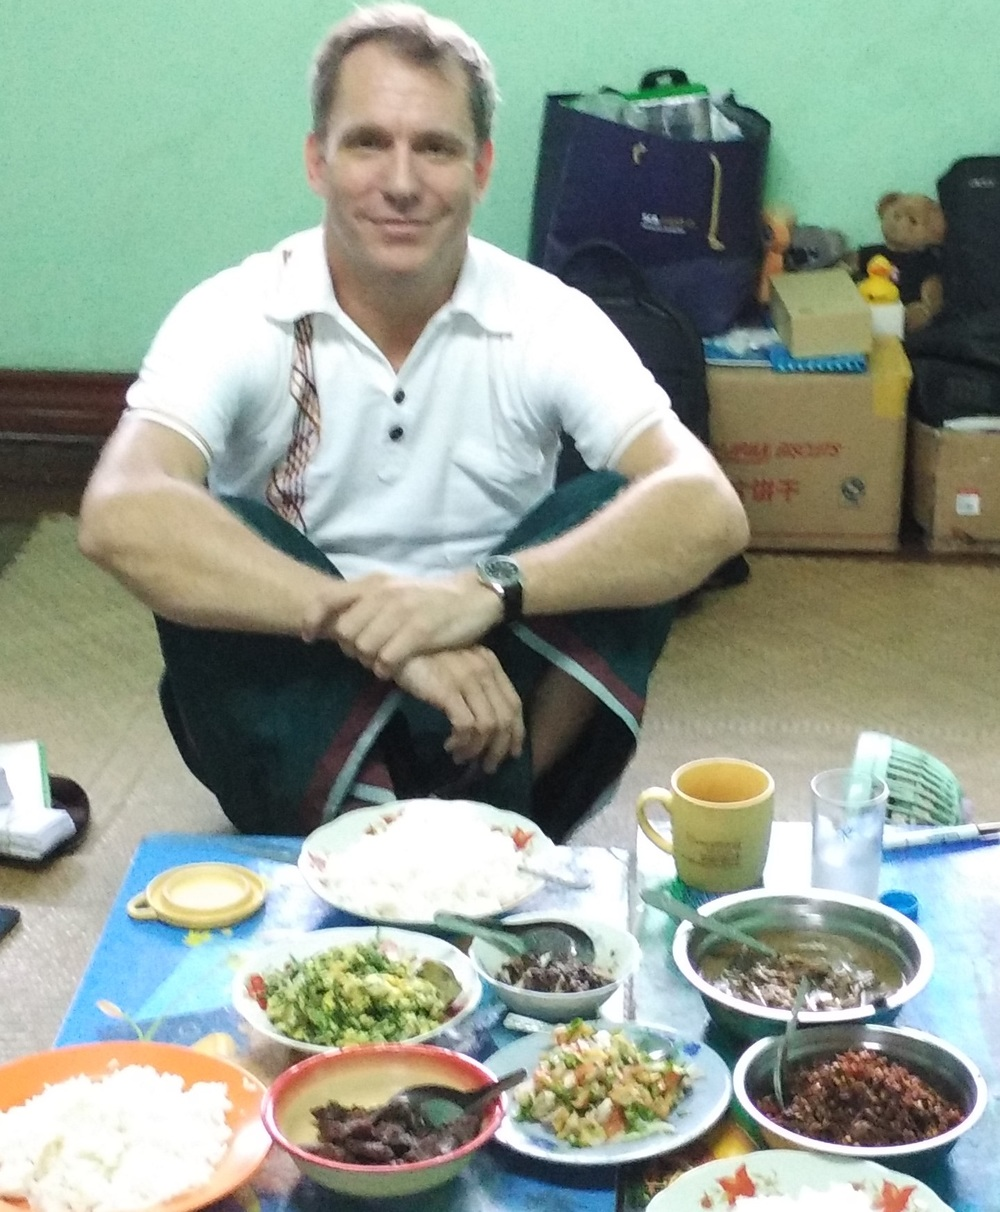 you'd look smug, too, if you were about to eat a Burmese feast...